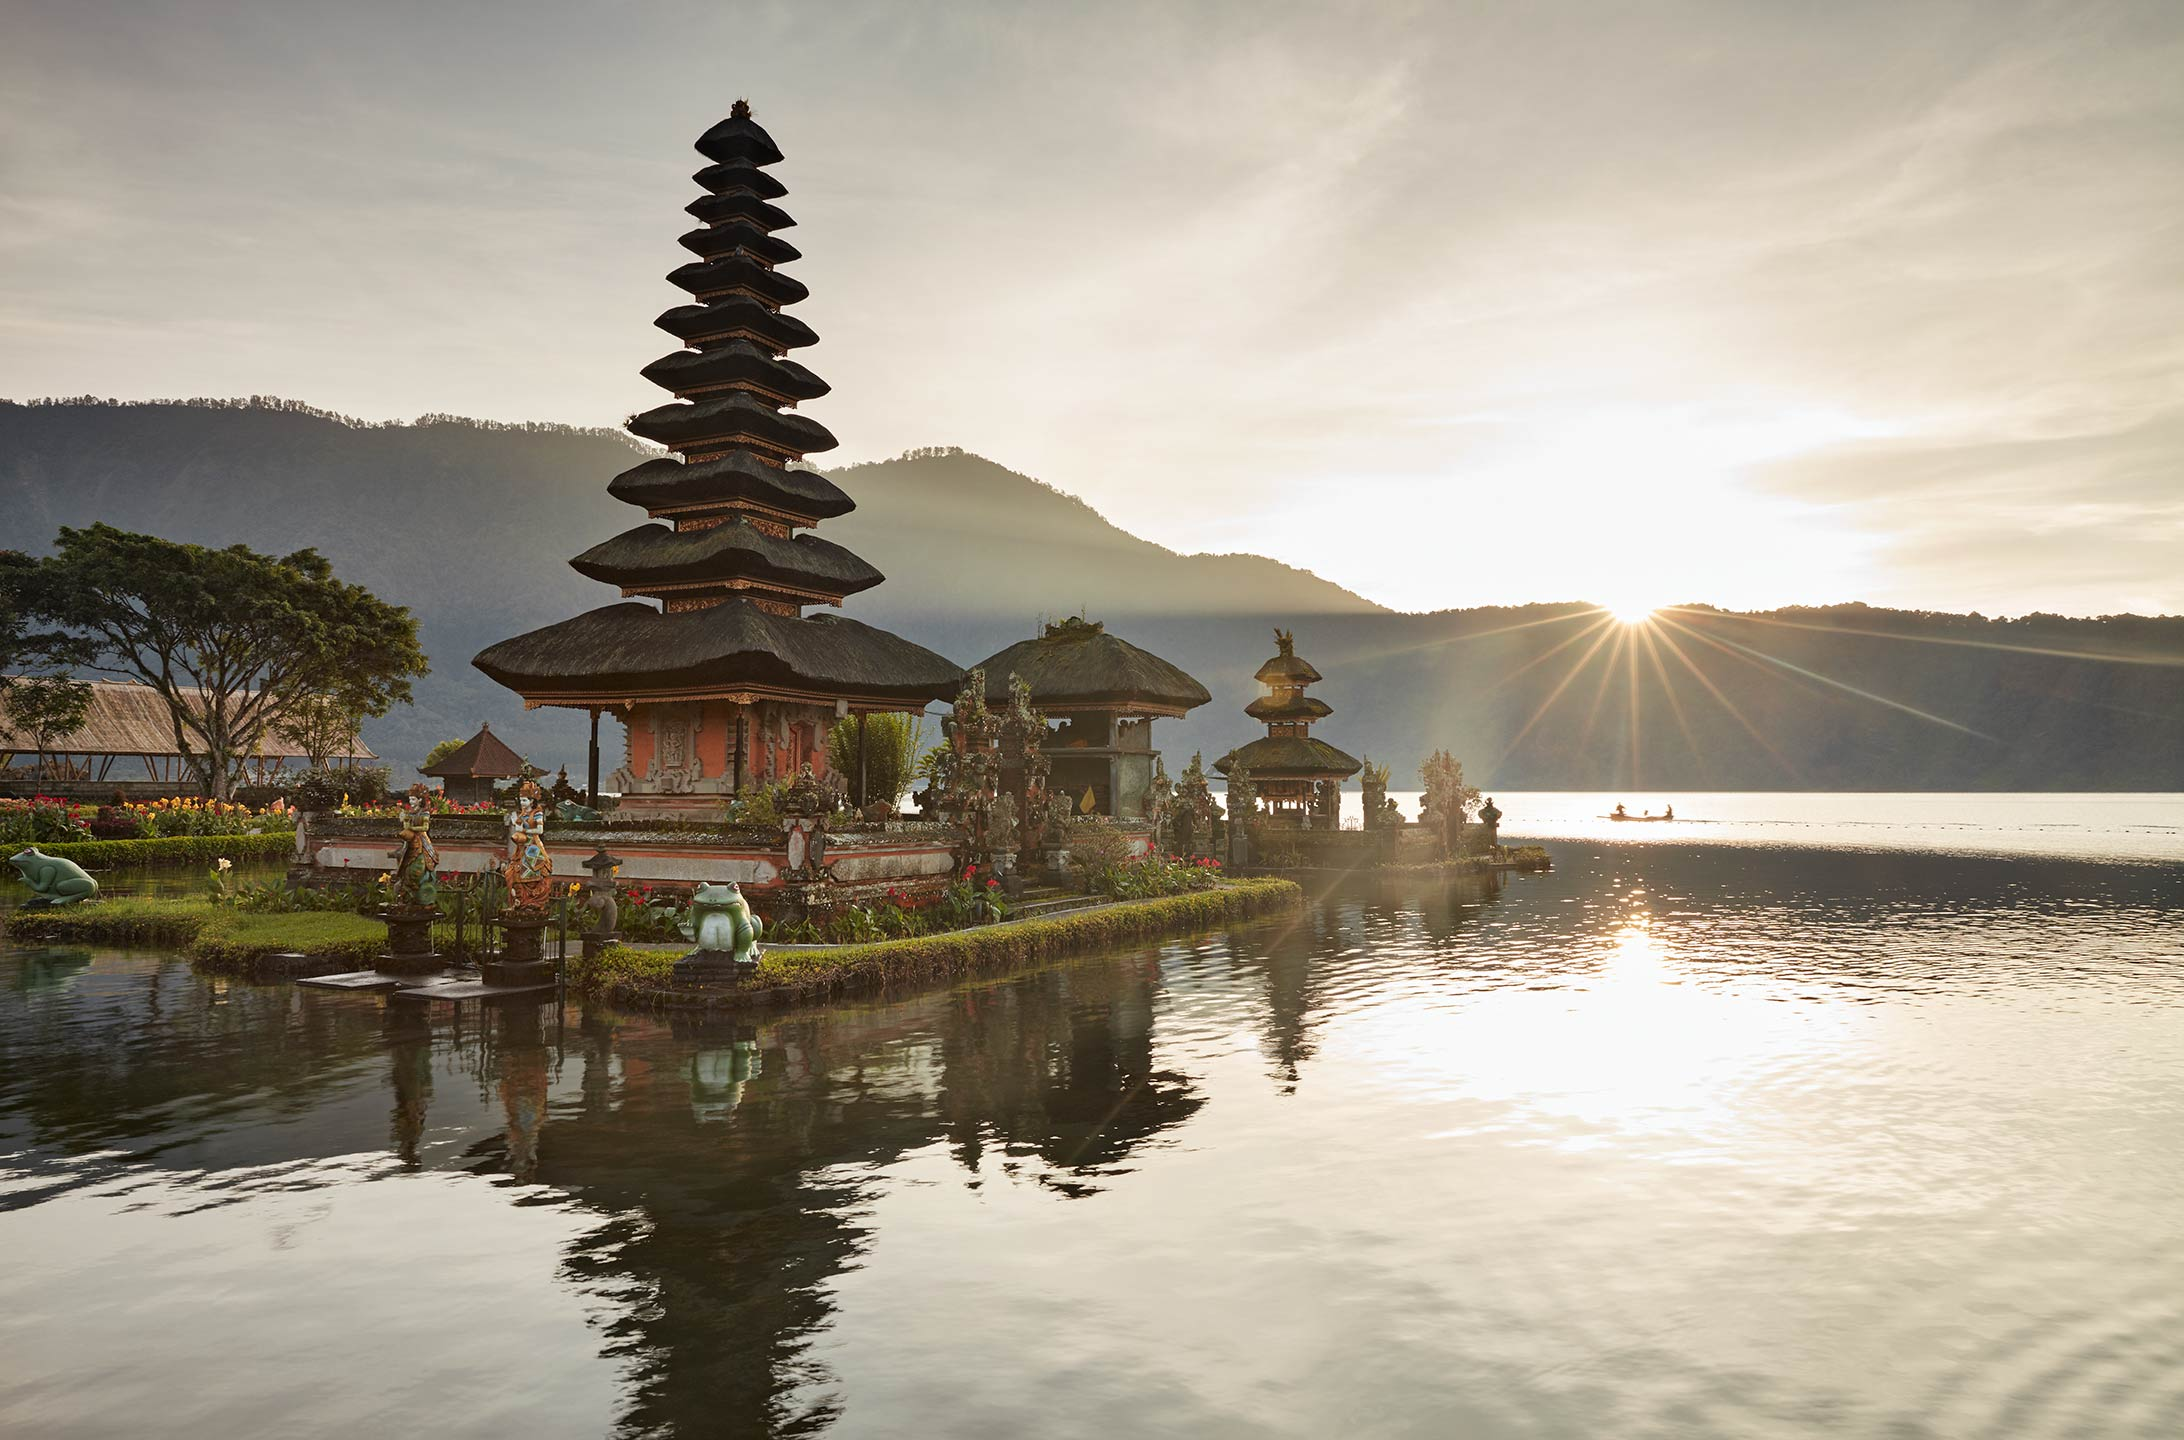 places_bali_bratan_temple_01